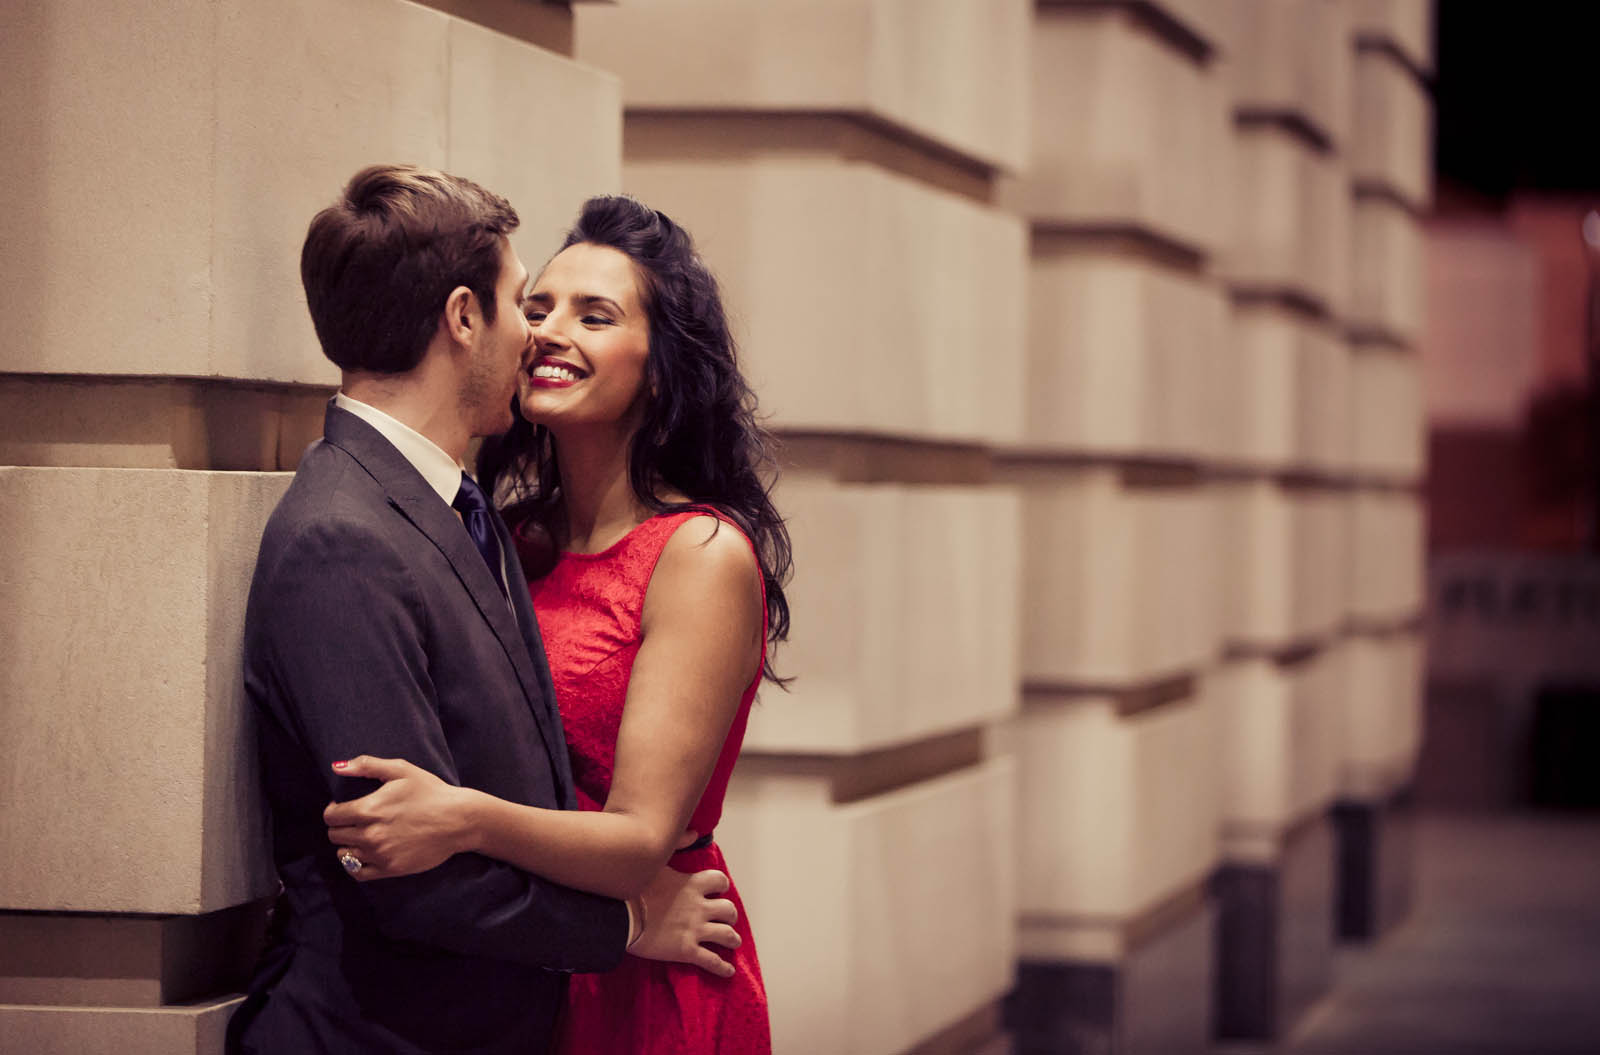 Alex_and_Remy_Proposal_Engagement-0989.jpg